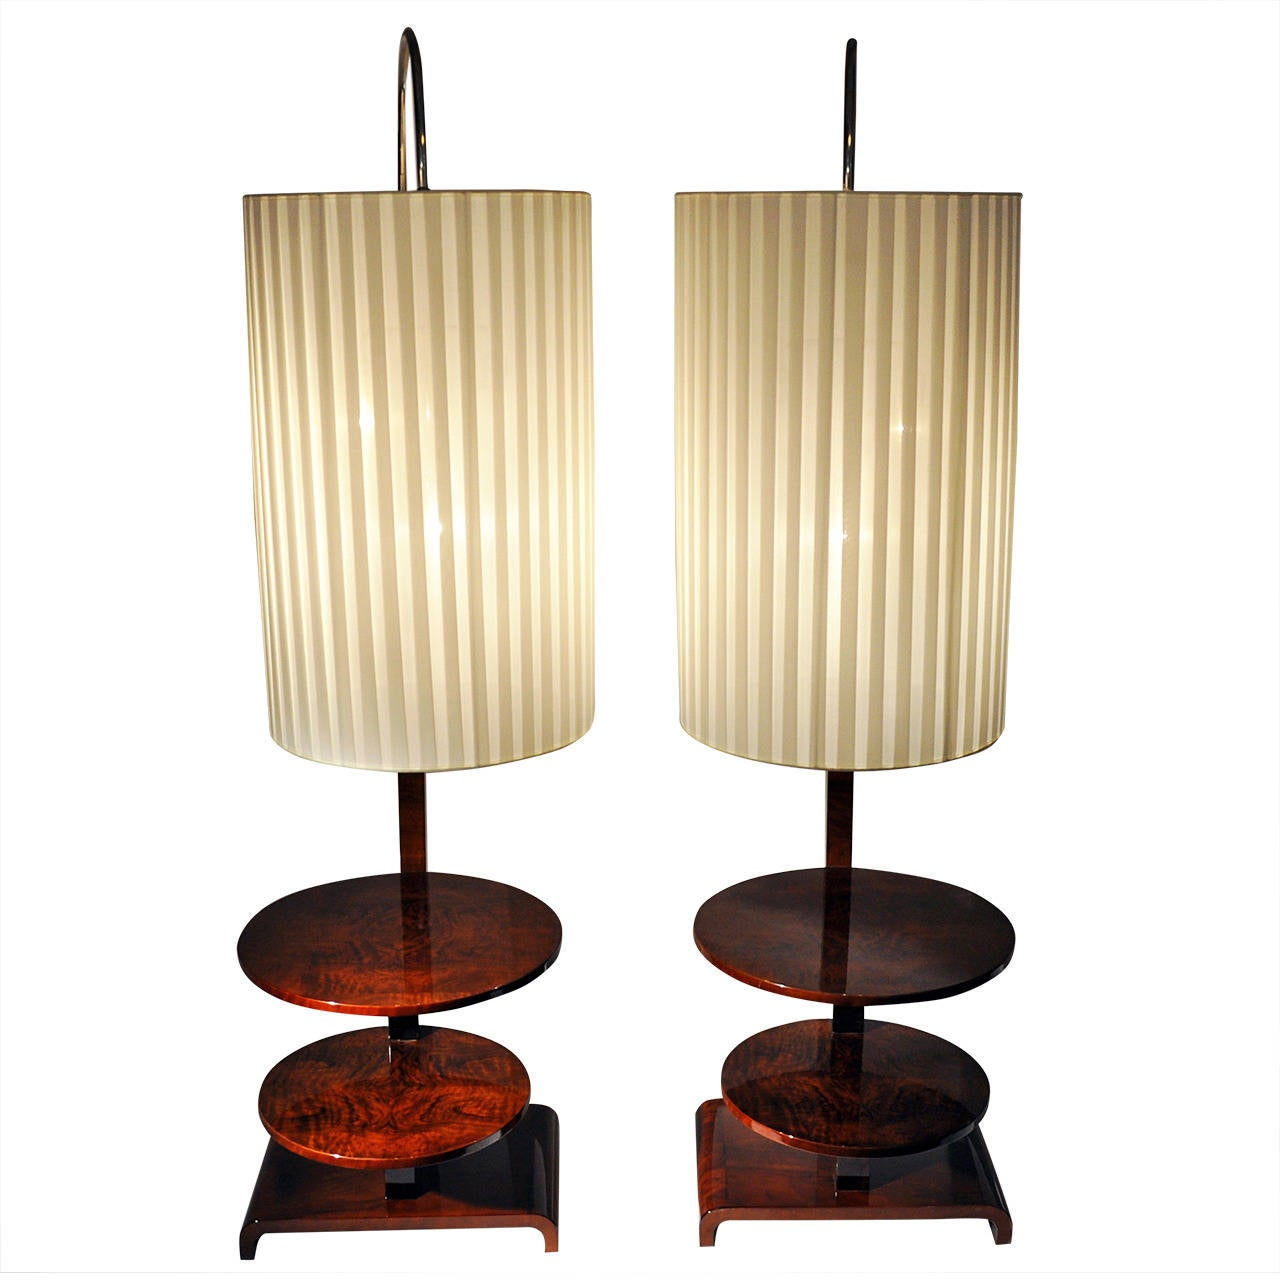 pair of art deco style floor lamps at 1stdibs. Black Bedroom Furniture Sets. Home Design Ideas